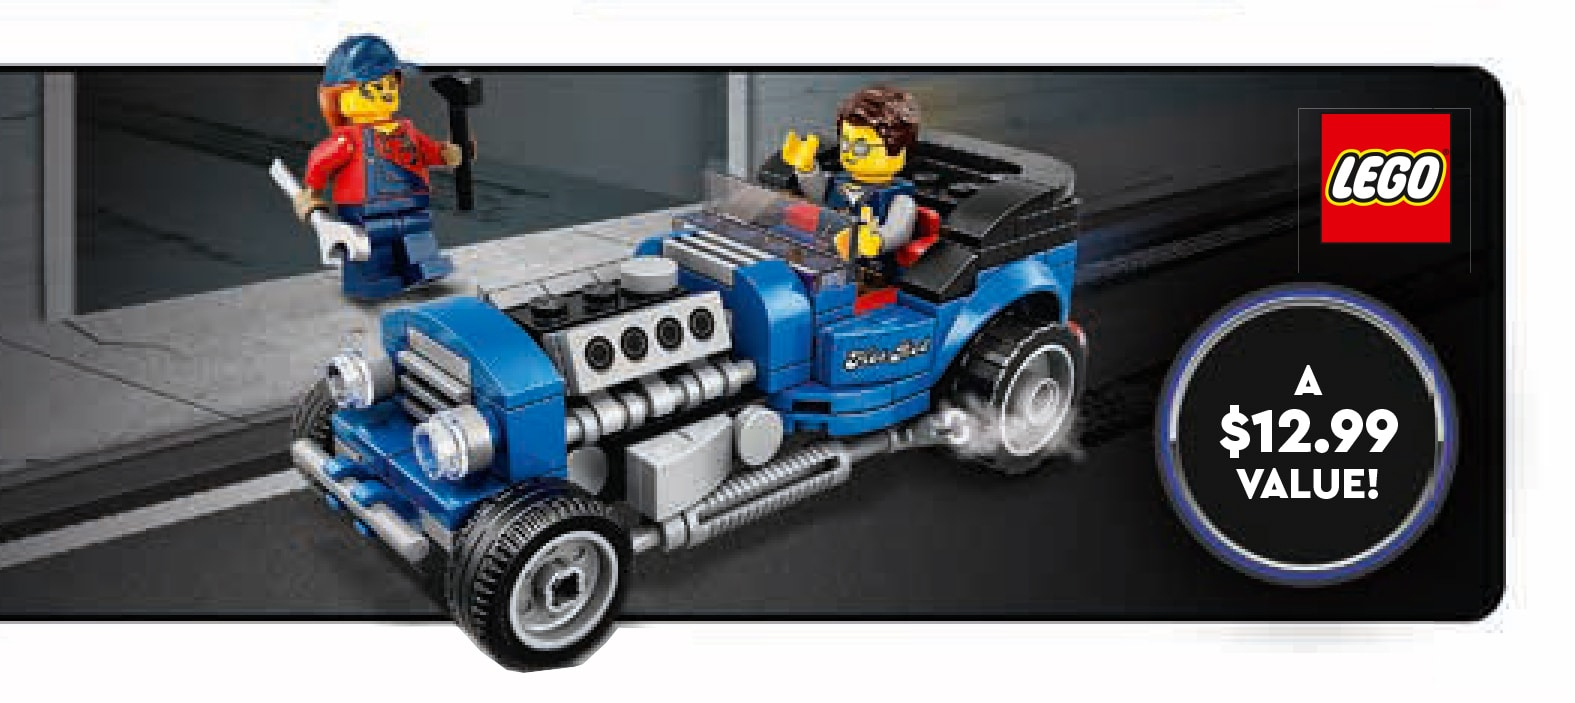 LEGO 40409 Hot Rod GWP